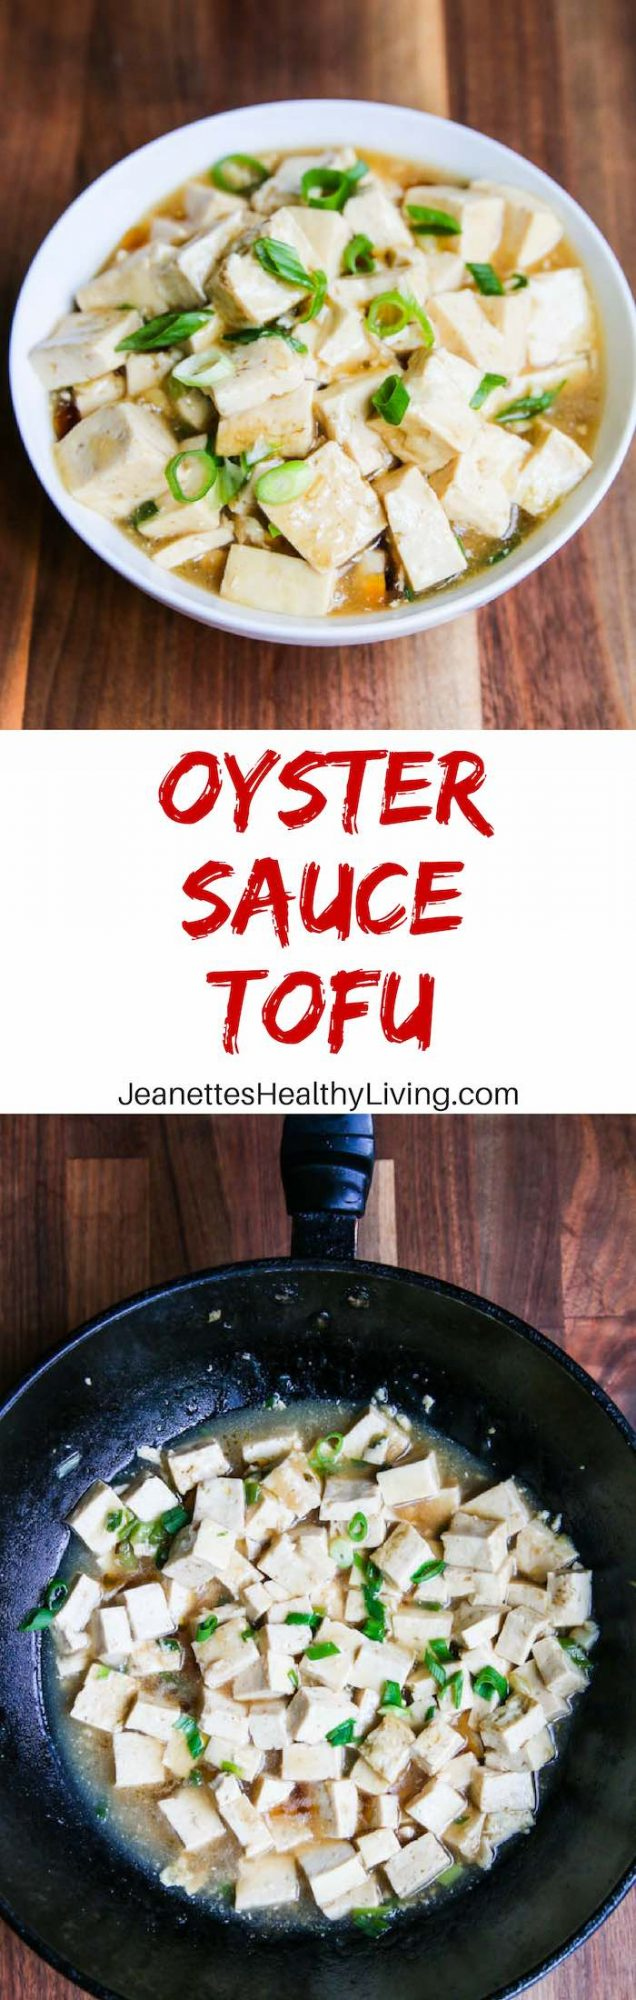 Oyster Sauce Tofu - simple, humble dish that is healthy and delicious